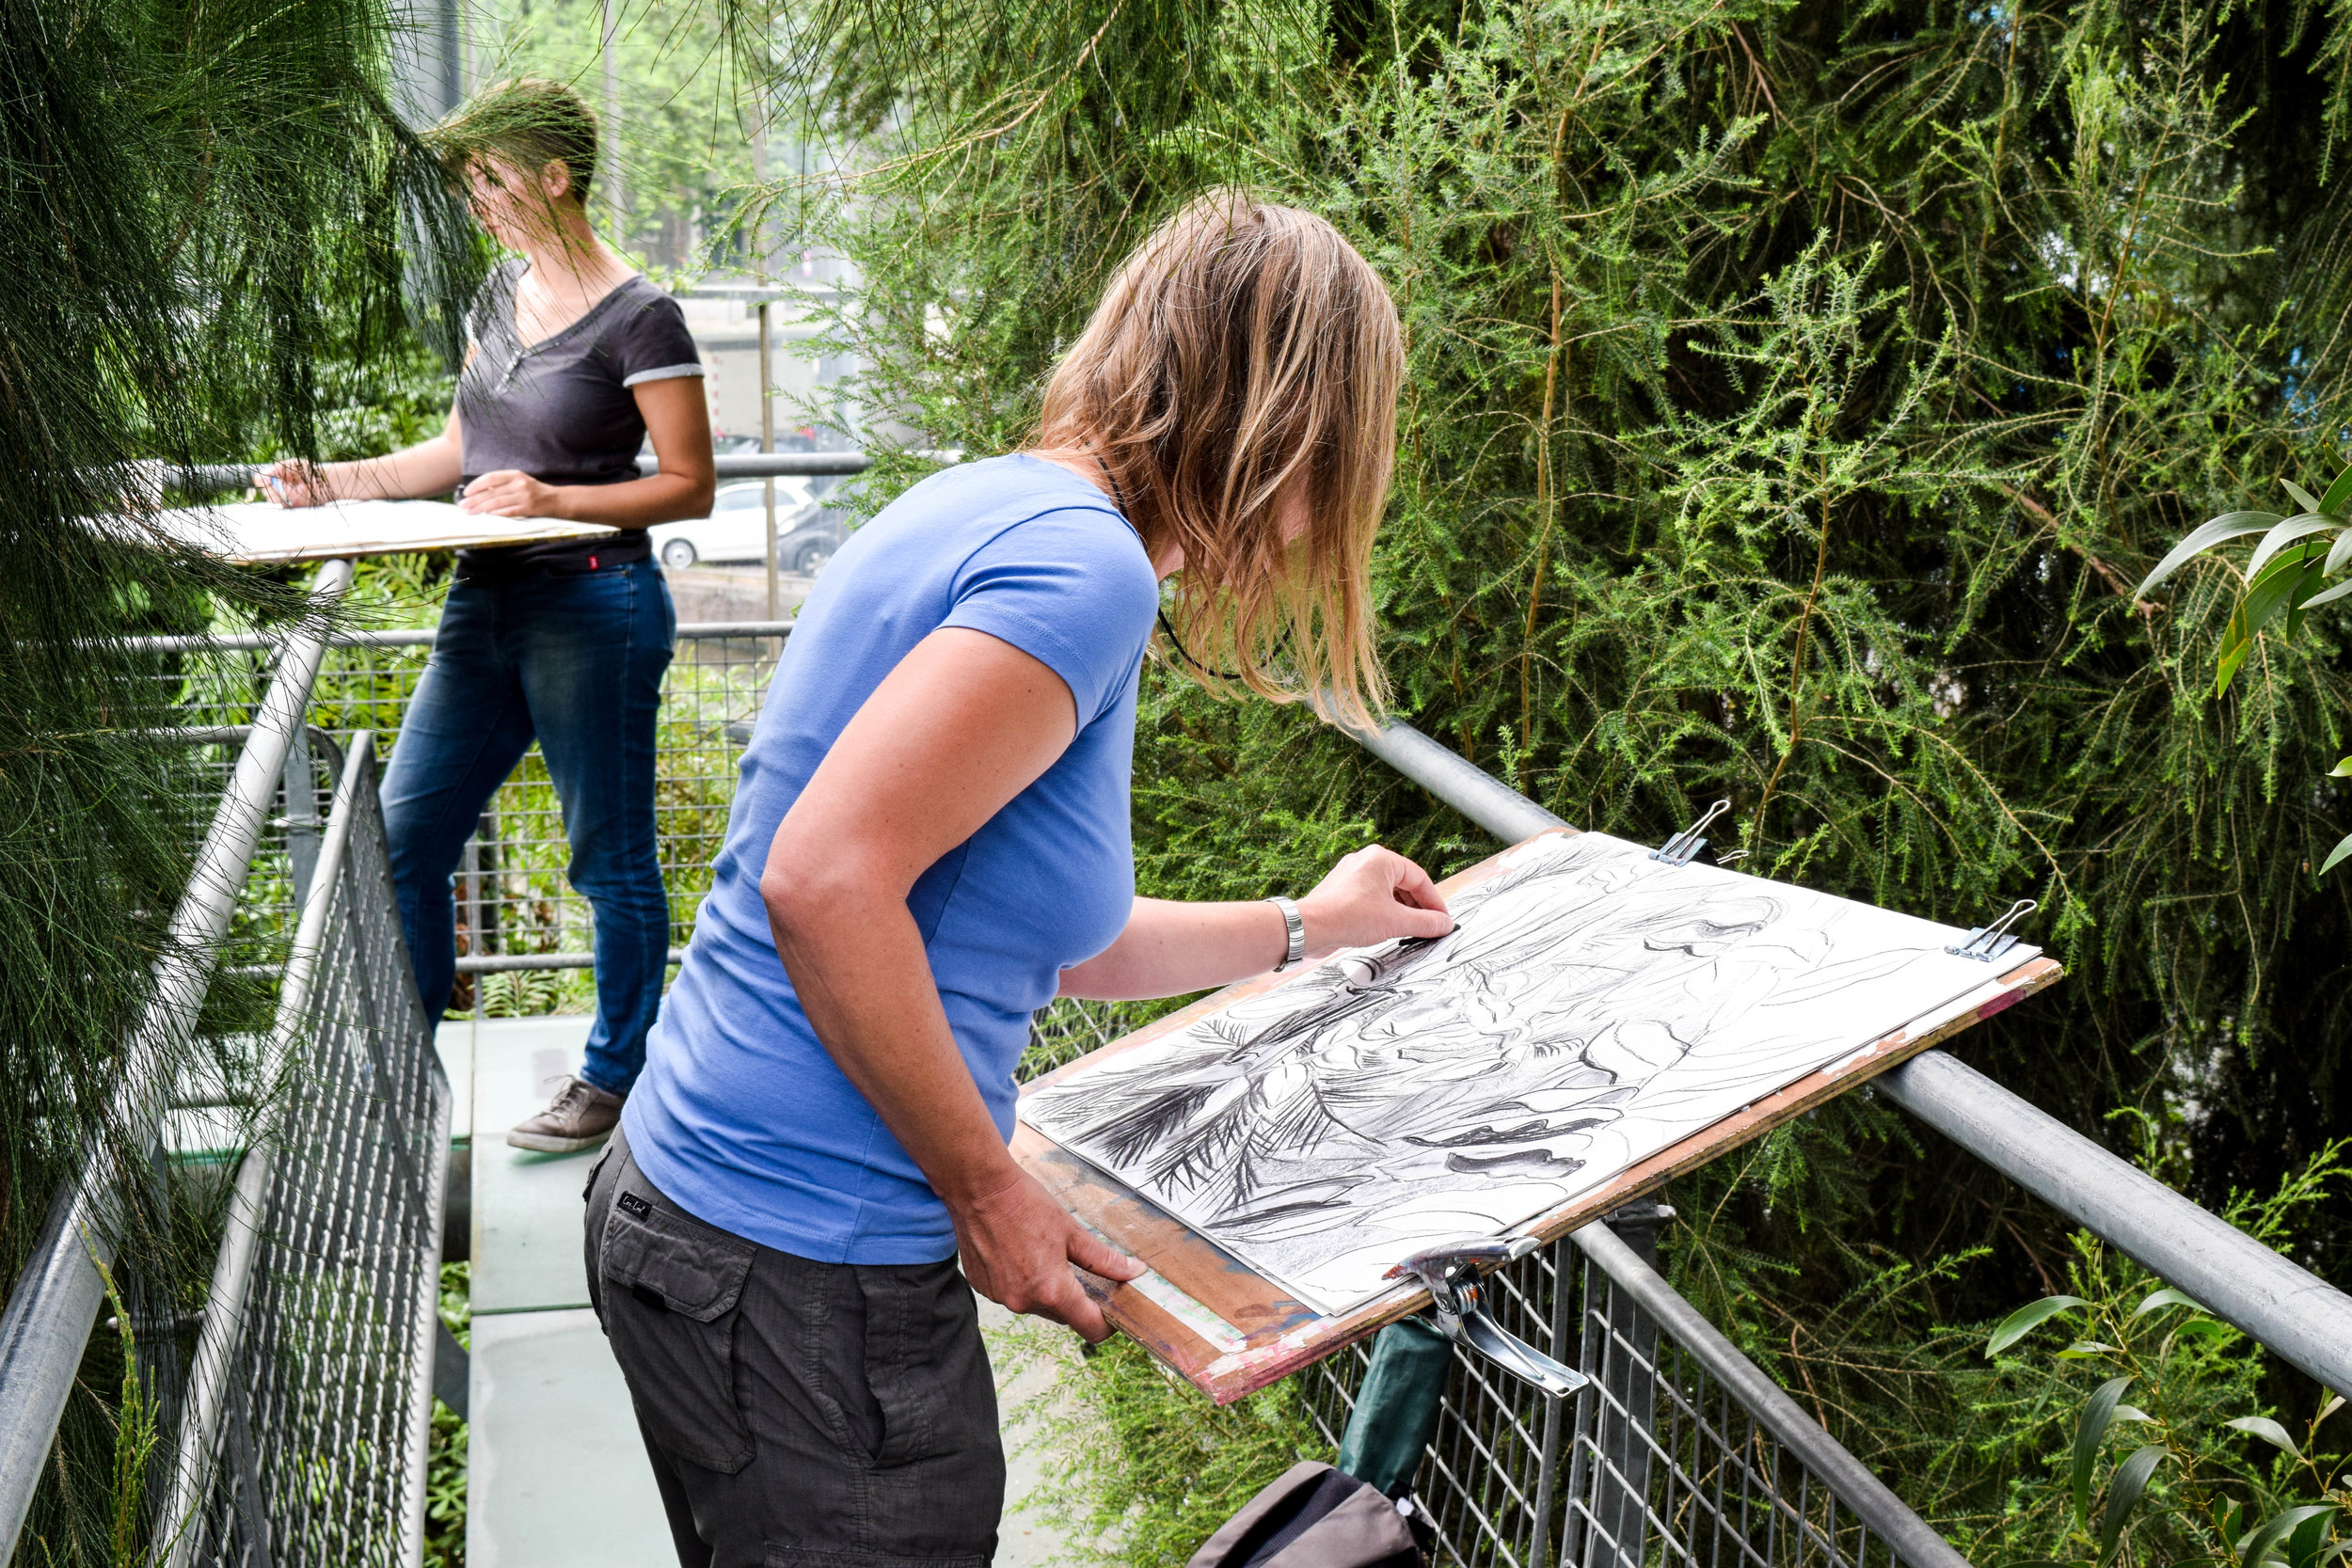 Two artists drawing sketches in the Hortus Botanicus Amsterdam